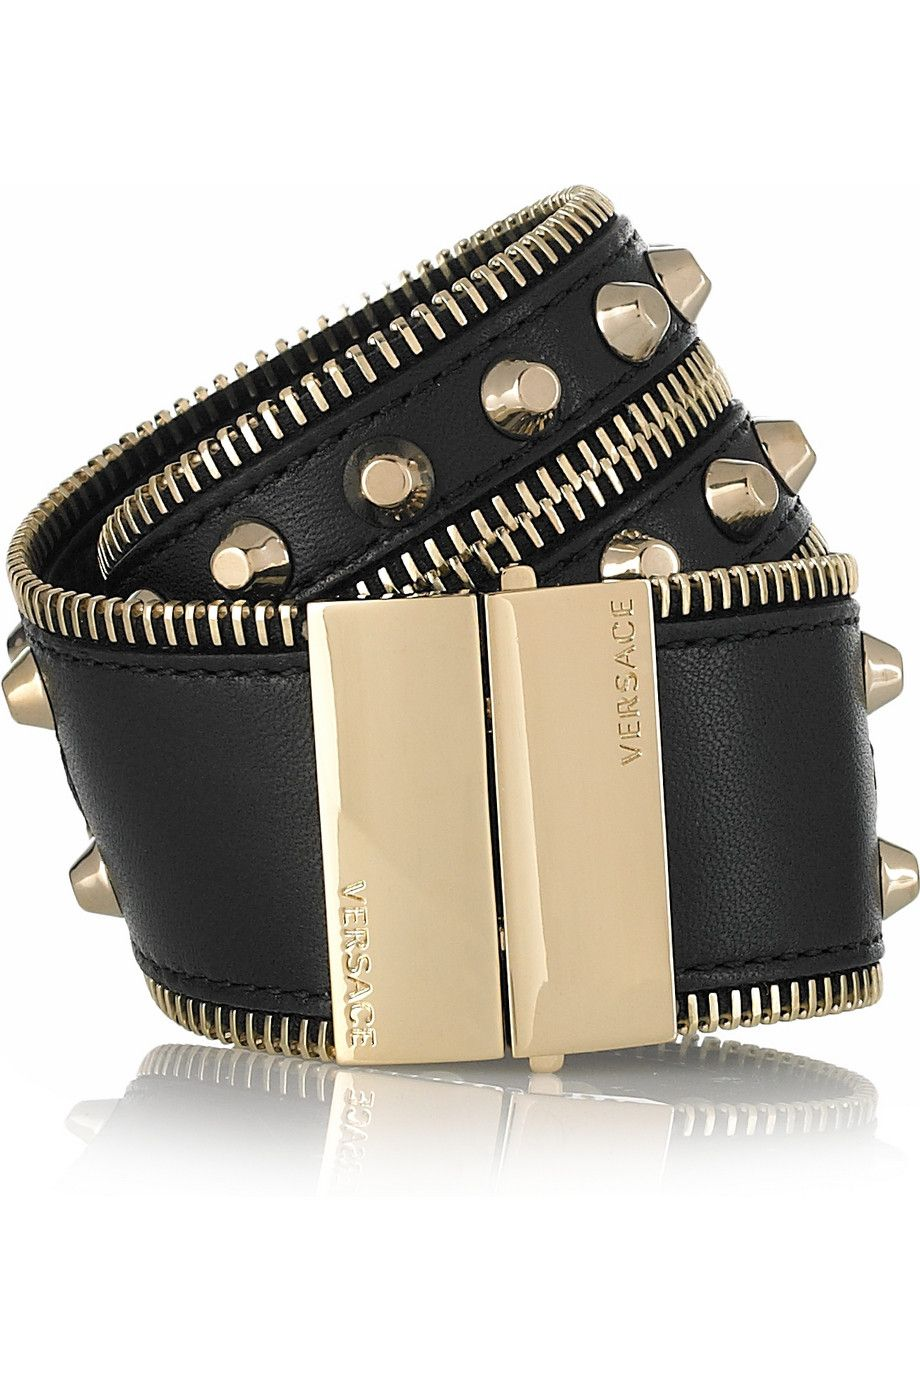 I has the pleasure of wearing this bracelet  along with 20,000 dollars worth of Versace clothes while I was in Vegas, AMAZING!!!!